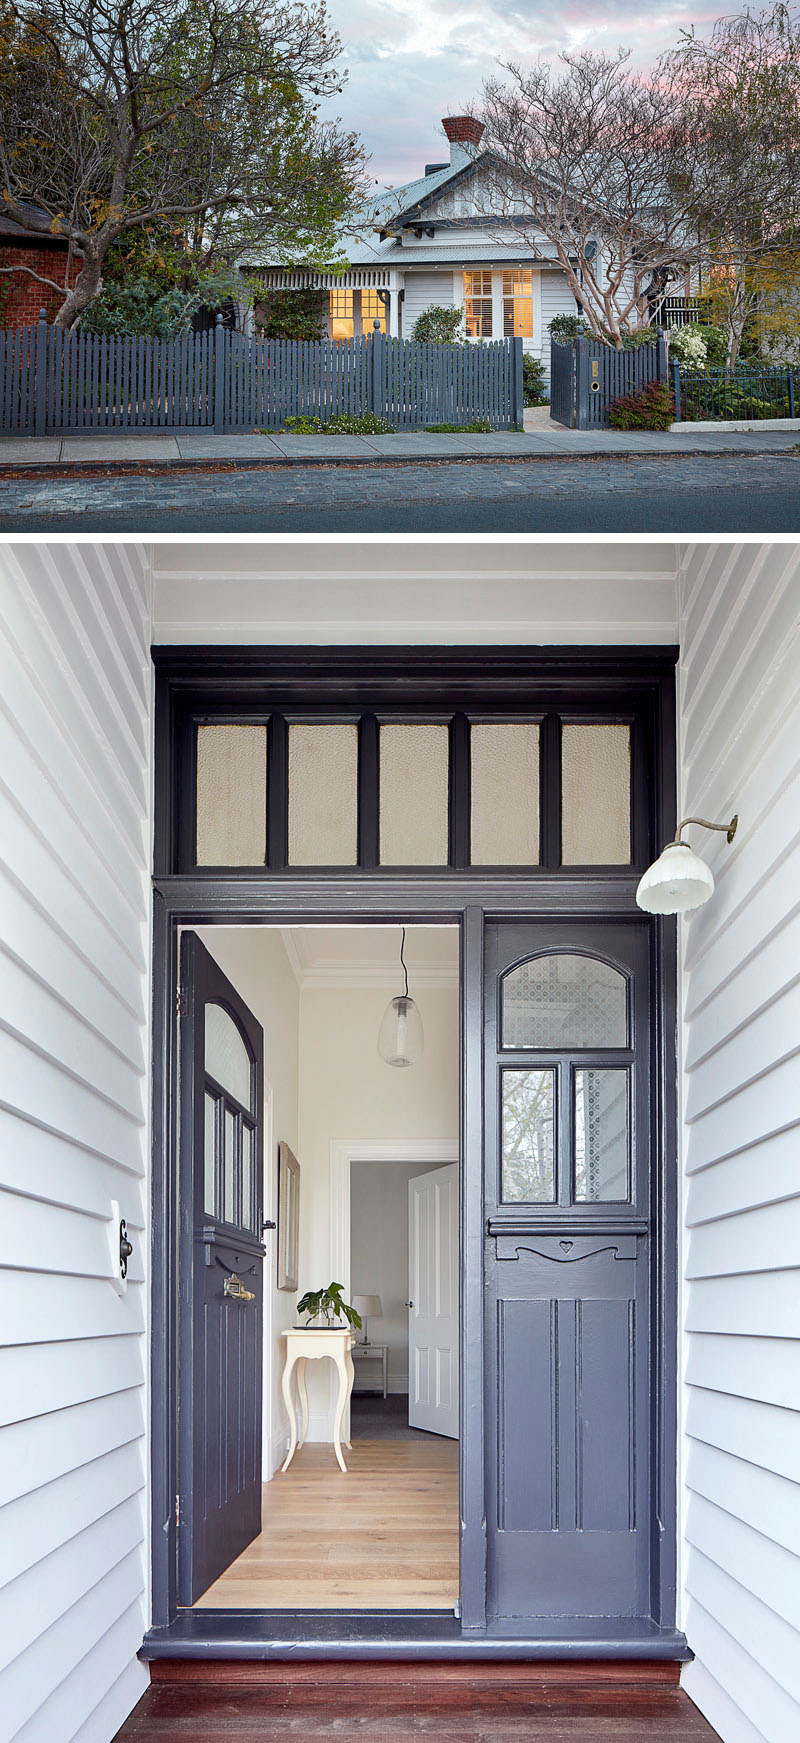 Architecture and interior design firm Bryant Alsop, has given new life to an Edwardian character house in Melbourne, Australia, for their clients who wanted a contemporary family home, that was open-plan and flowed, but retained distinct living areas as was characteristic of the older house. #HouseDesign #FrontDoor